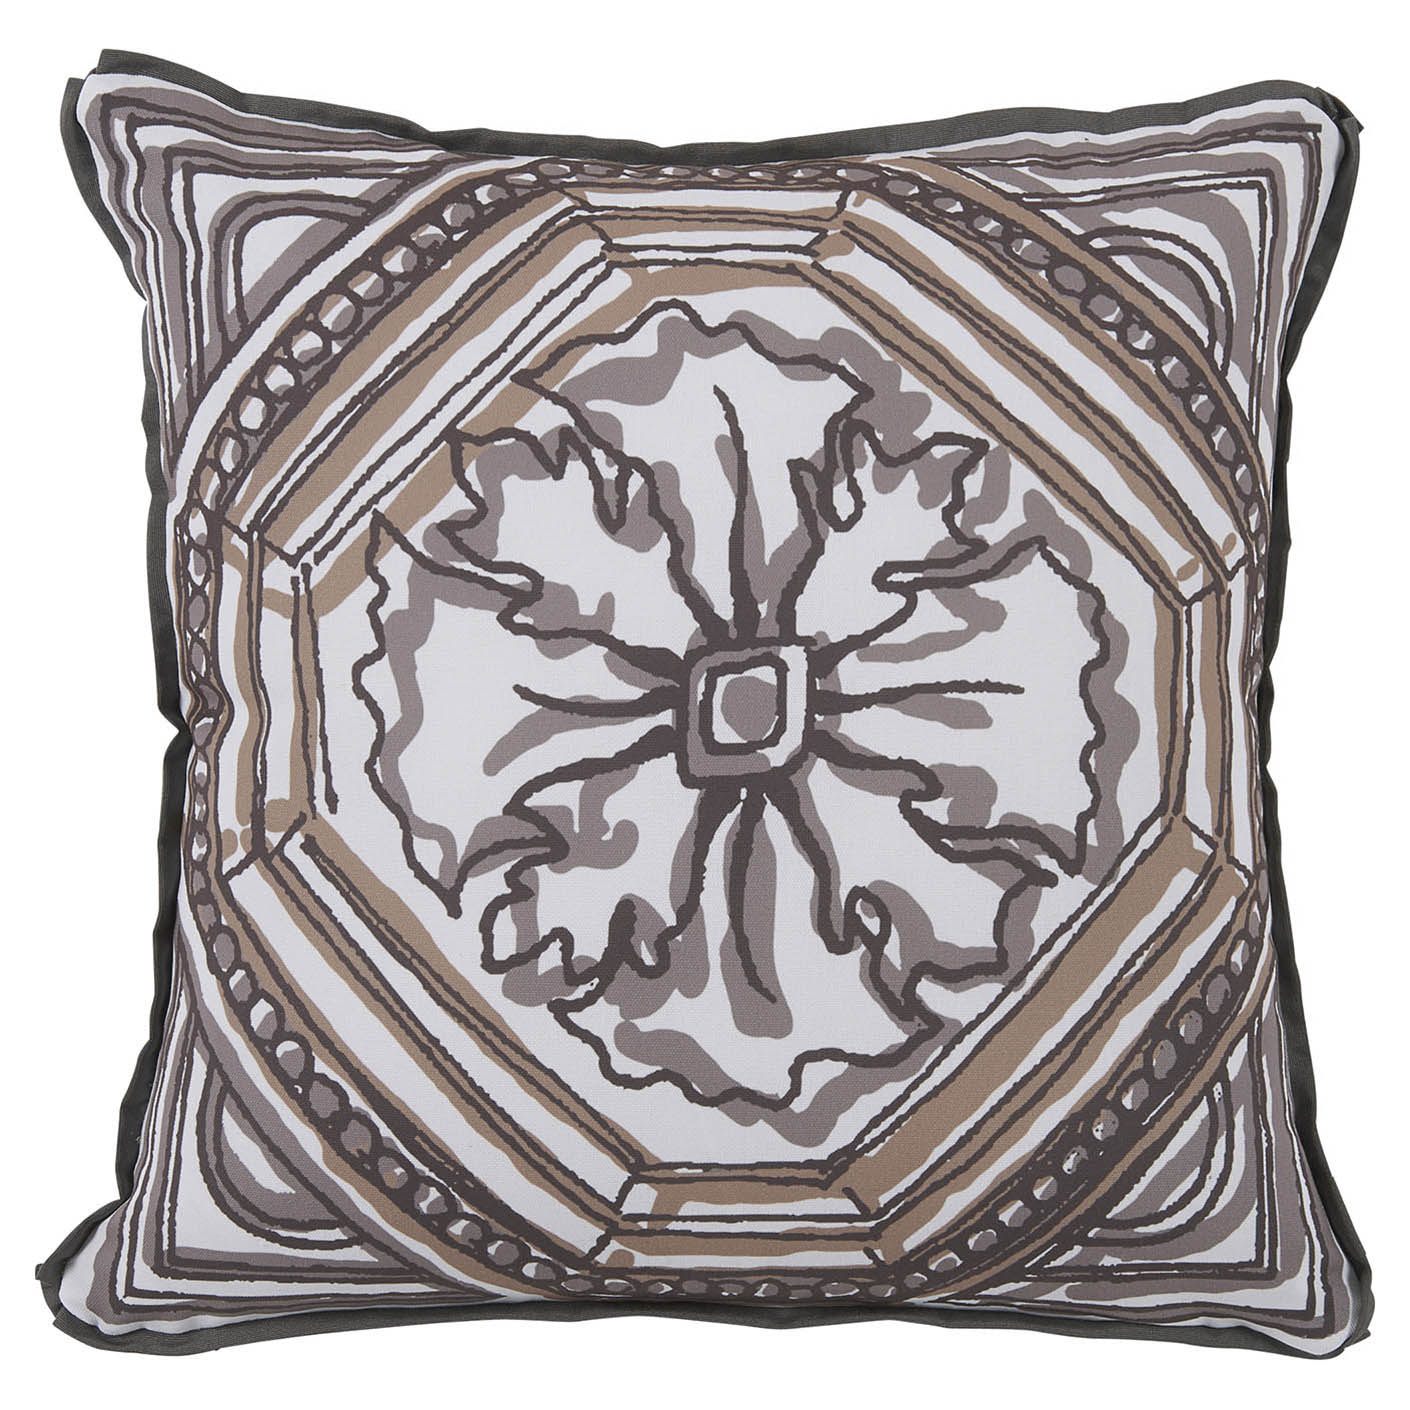 Lydie Coastal Floral Camel Sketch Outdoor Pillow - 20x20